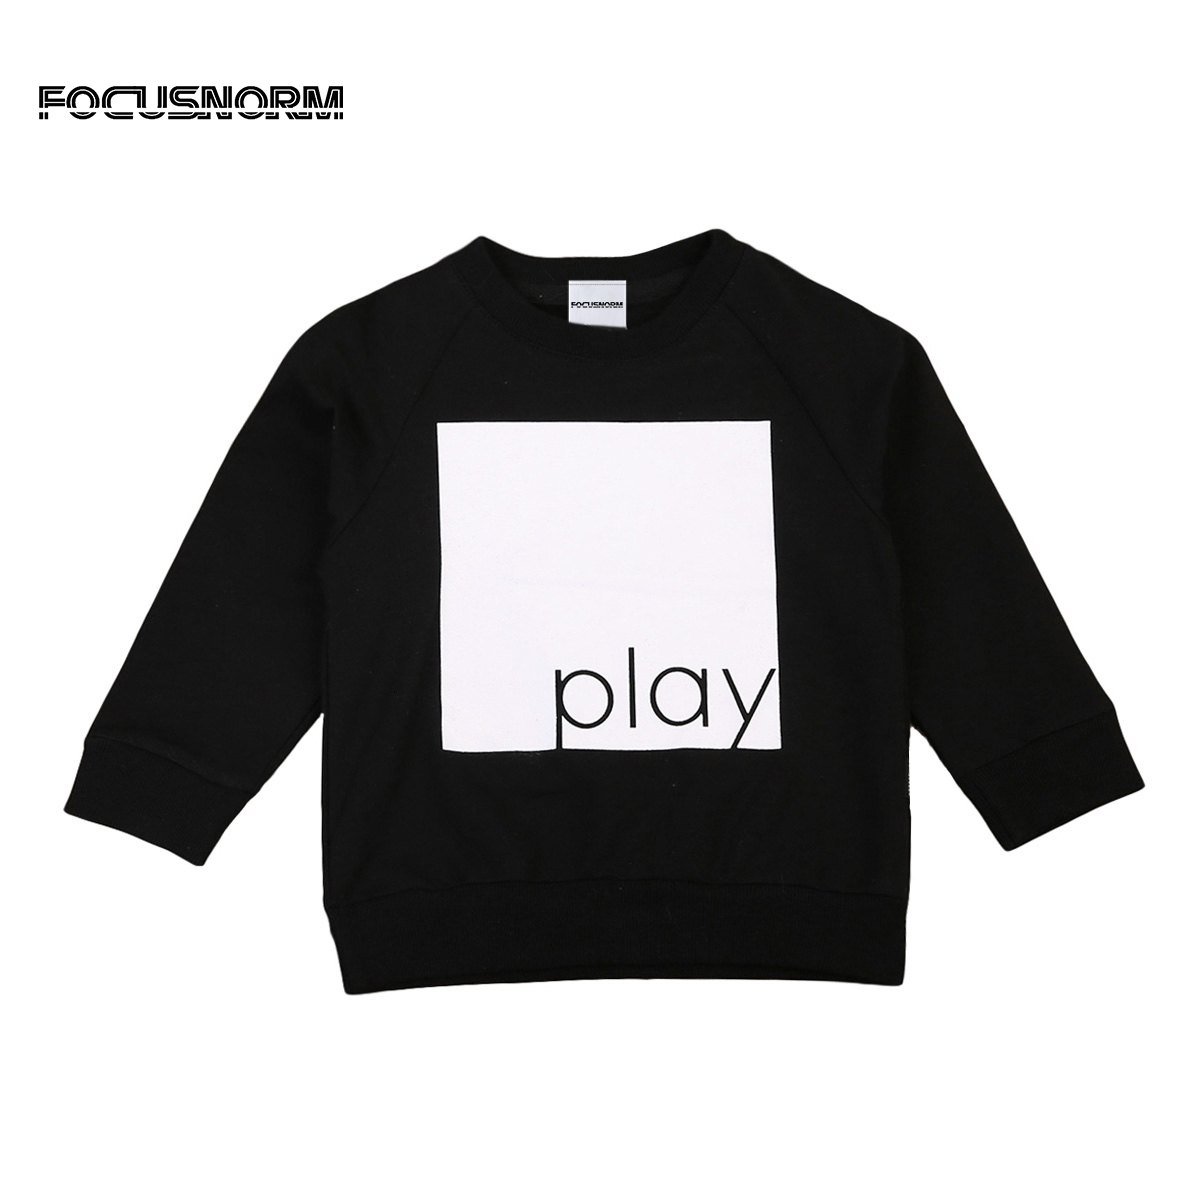 4 Styles Toddler Simple Sweatshirt Hoodies Tops Kids Boy Jumpers Long Sleeve Crew Neck Autumn Winter Warm Pullover бальзам для губ payot payot pa003lwimg66